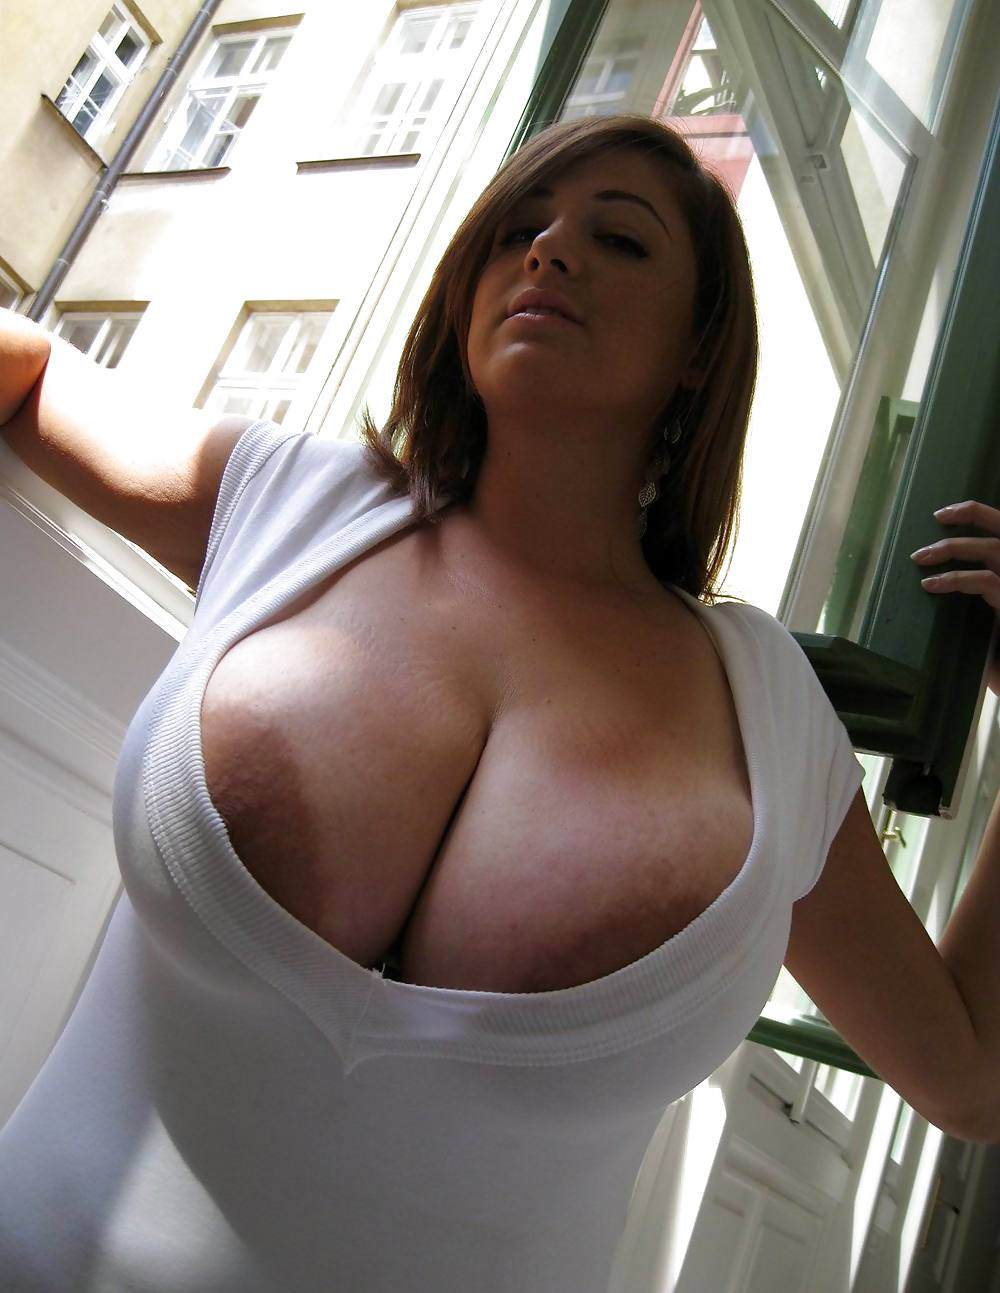 Tight Shirts Tits